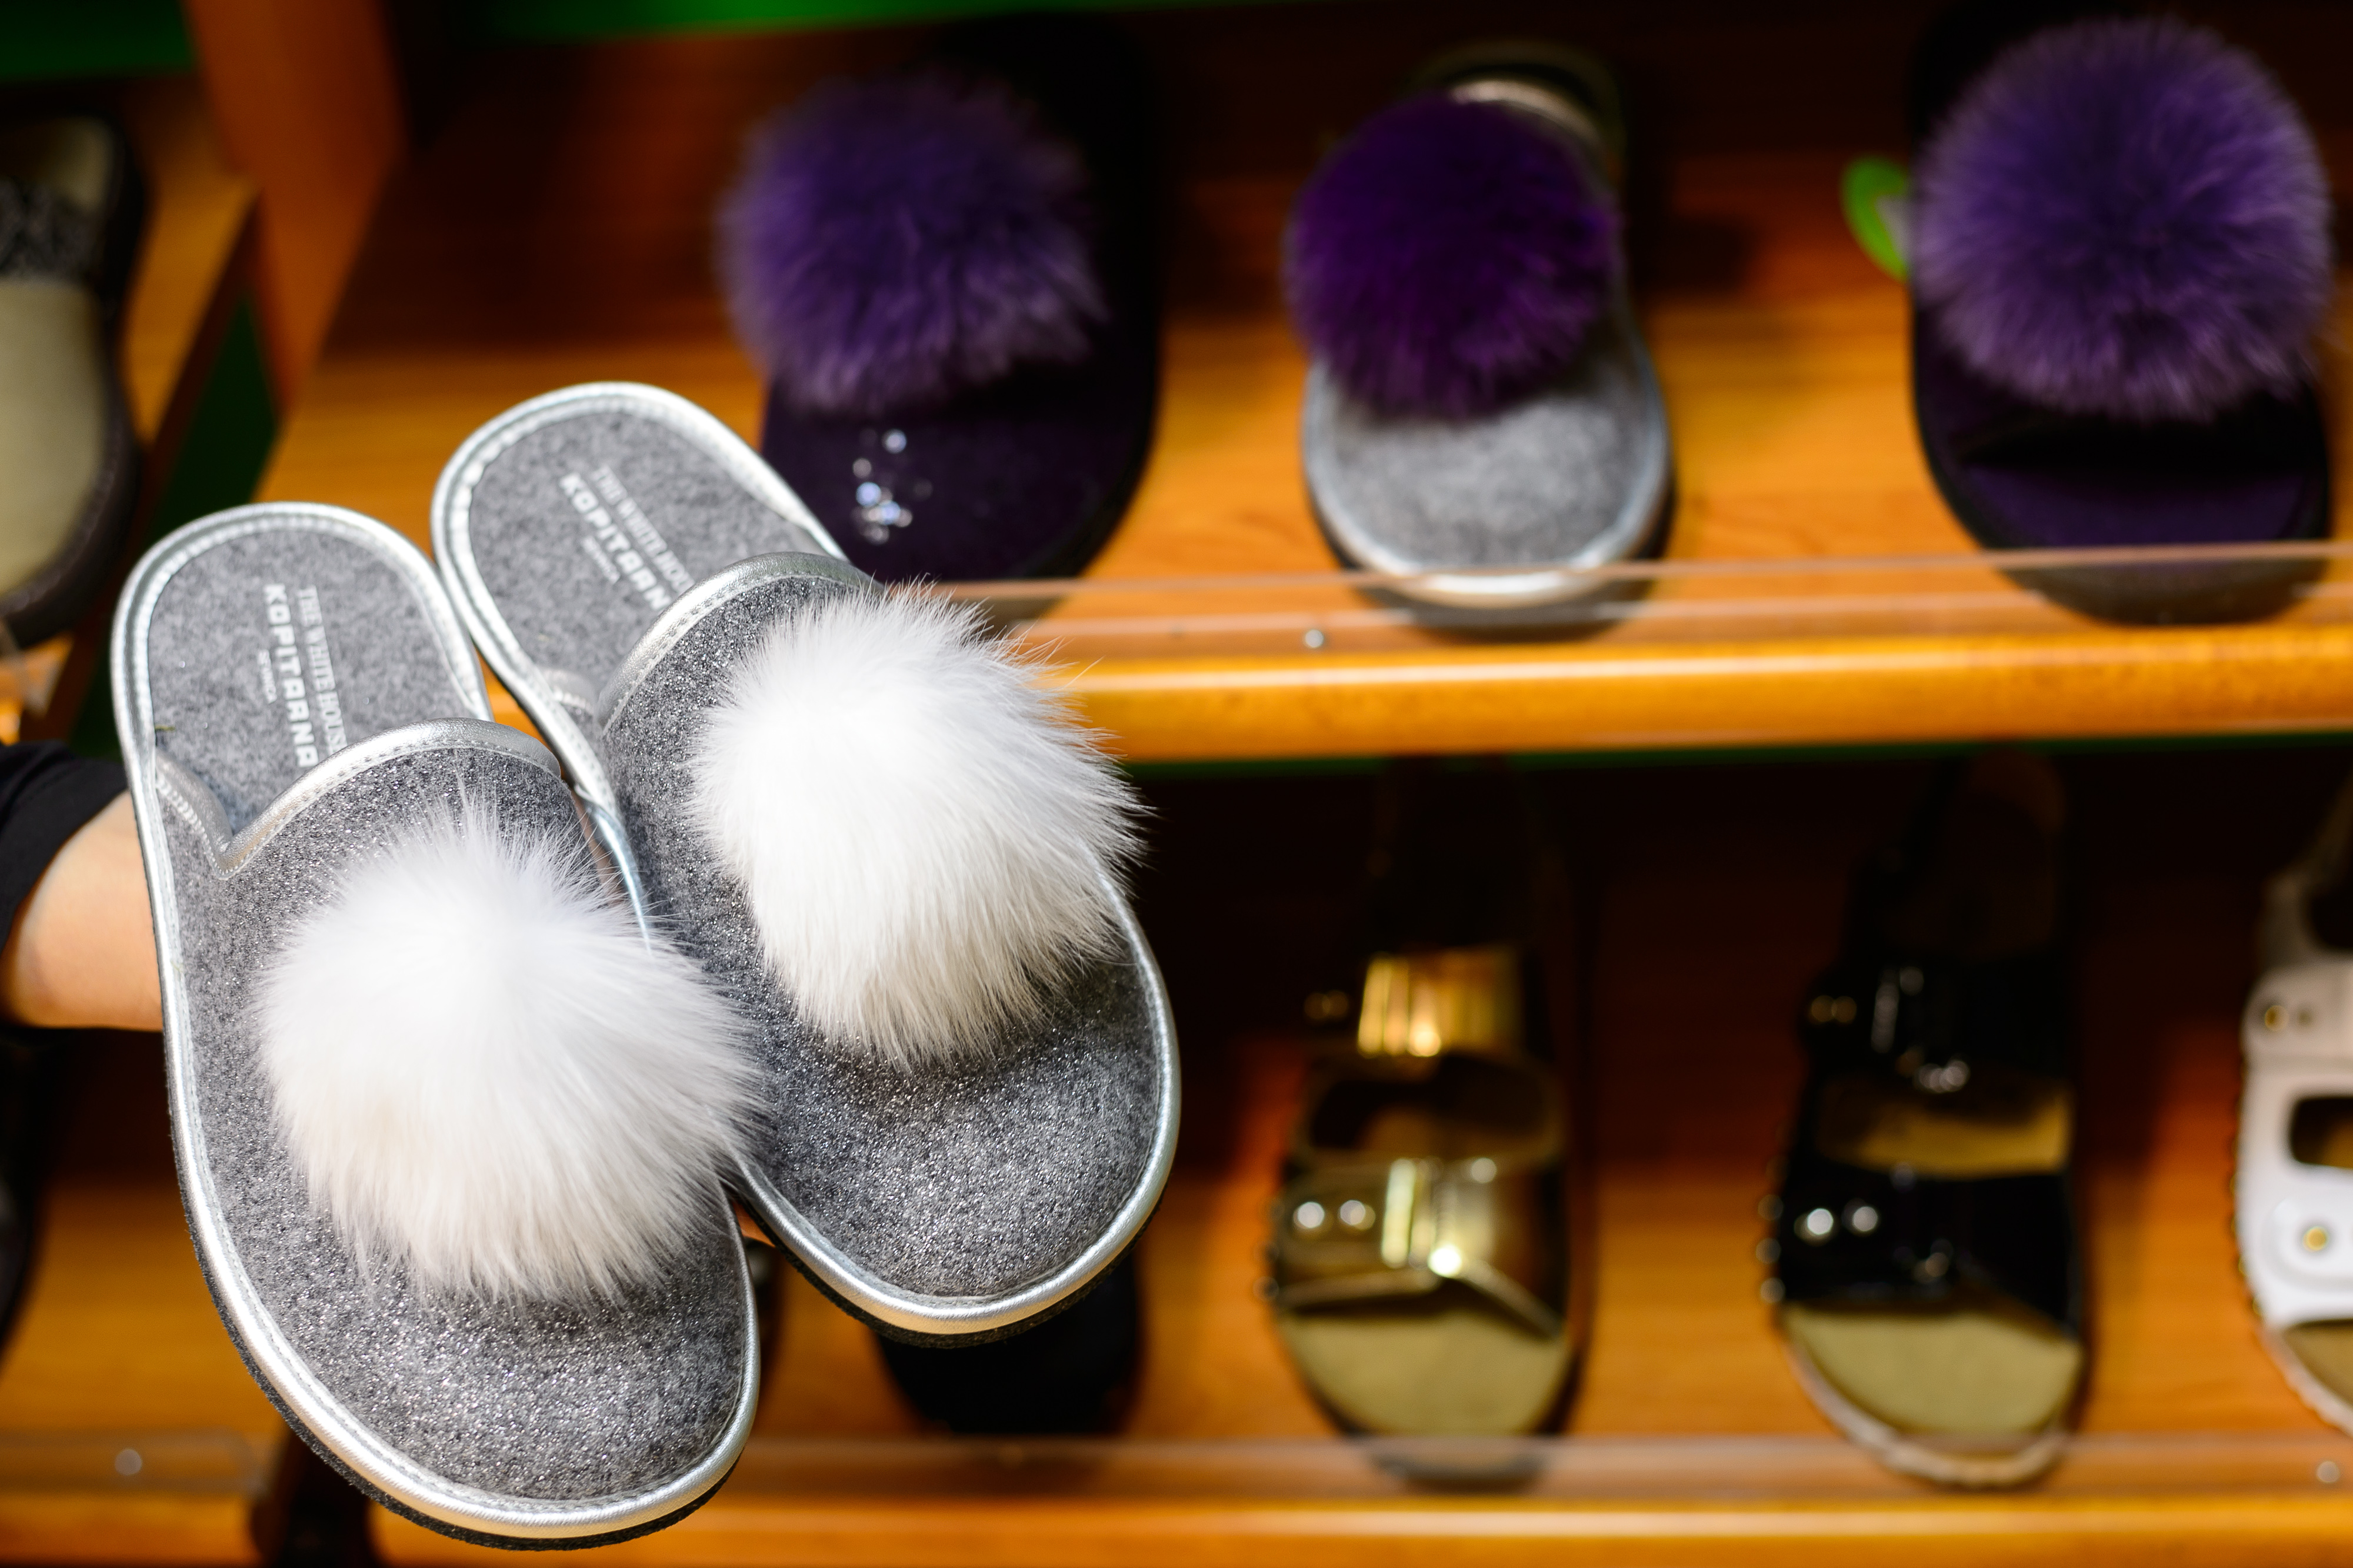 TO GO WITH AFP STORY BY BOJAN KAVCIC Slippers with the lettering  The White House , are pictured on December 20, 2016 in Sevnica, Slovenia, the hometown of future US First Lady Melania Trump. Golden  Melania  cakes,  White House  slippers, guided tours tracing her rise from pony-tailed schoolgirl to international model -- tiny Slovenia has tapped into big marketing opportunities thanks to its most famous daughter, the future US First Lady Melania Trump. / AFP / Jure MAKOVEC (Photo credit should read JURE MAKOVEC/AFP/Getty Images)